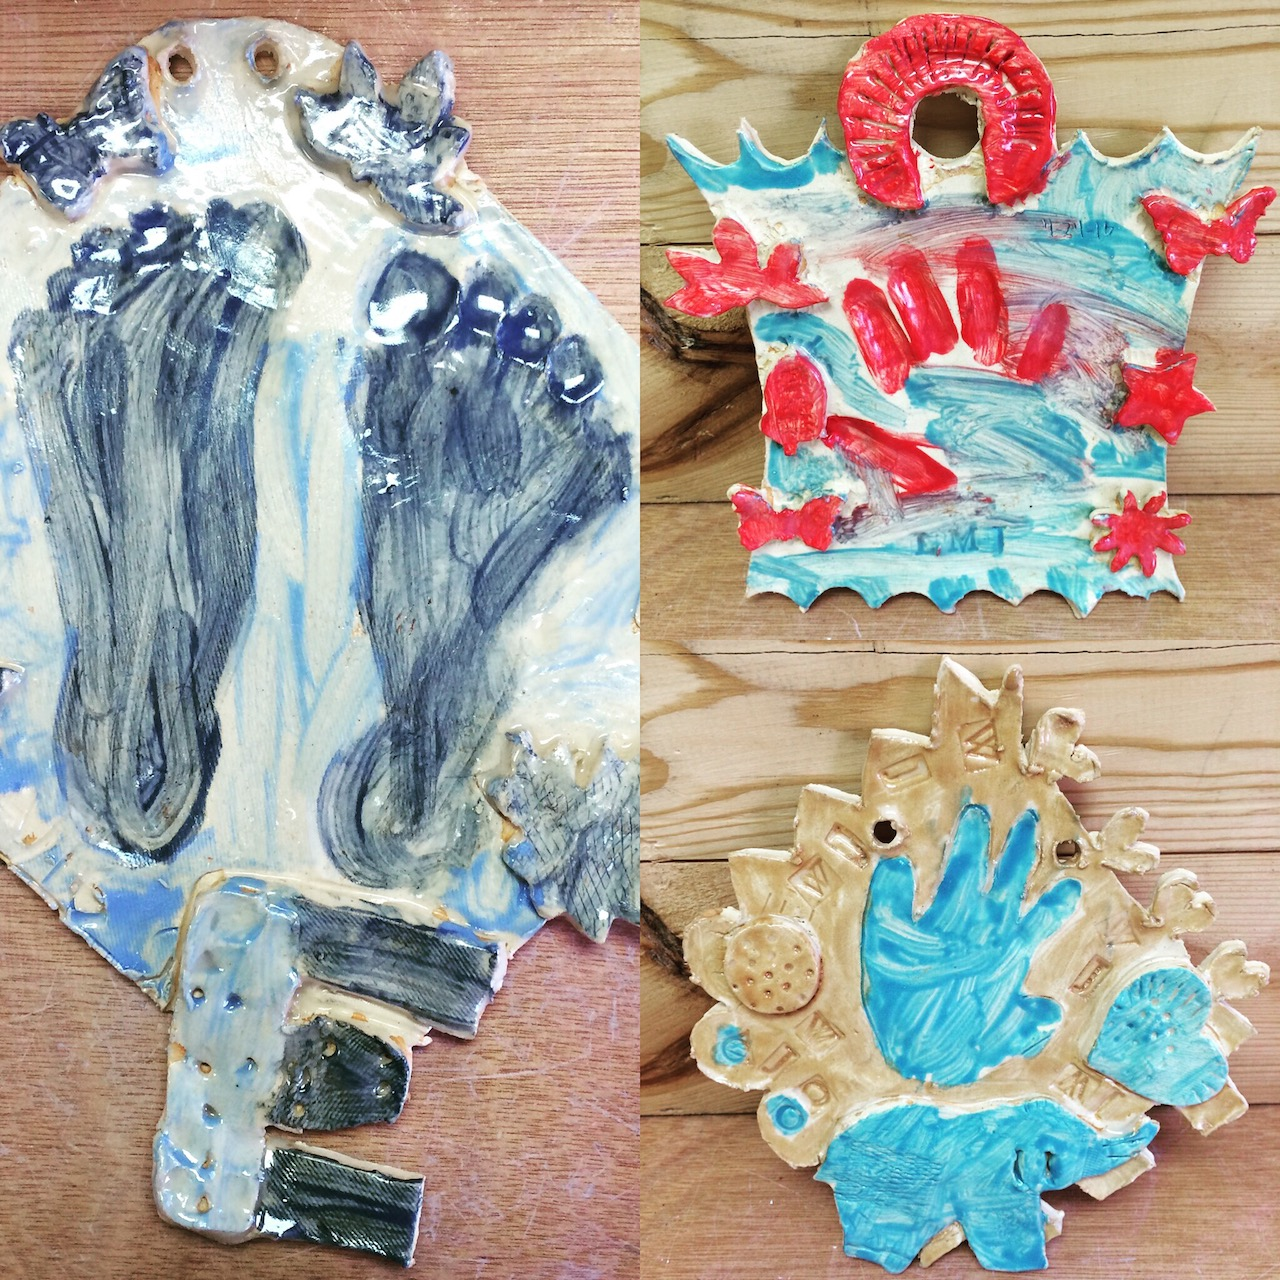 Pottery classes wheel throwing handbuilding ceramics instruction children change and grow quickly capture their footprints and handprints on ceramic tiles that you make yourself from scratch during a private pottery negle Choice Image